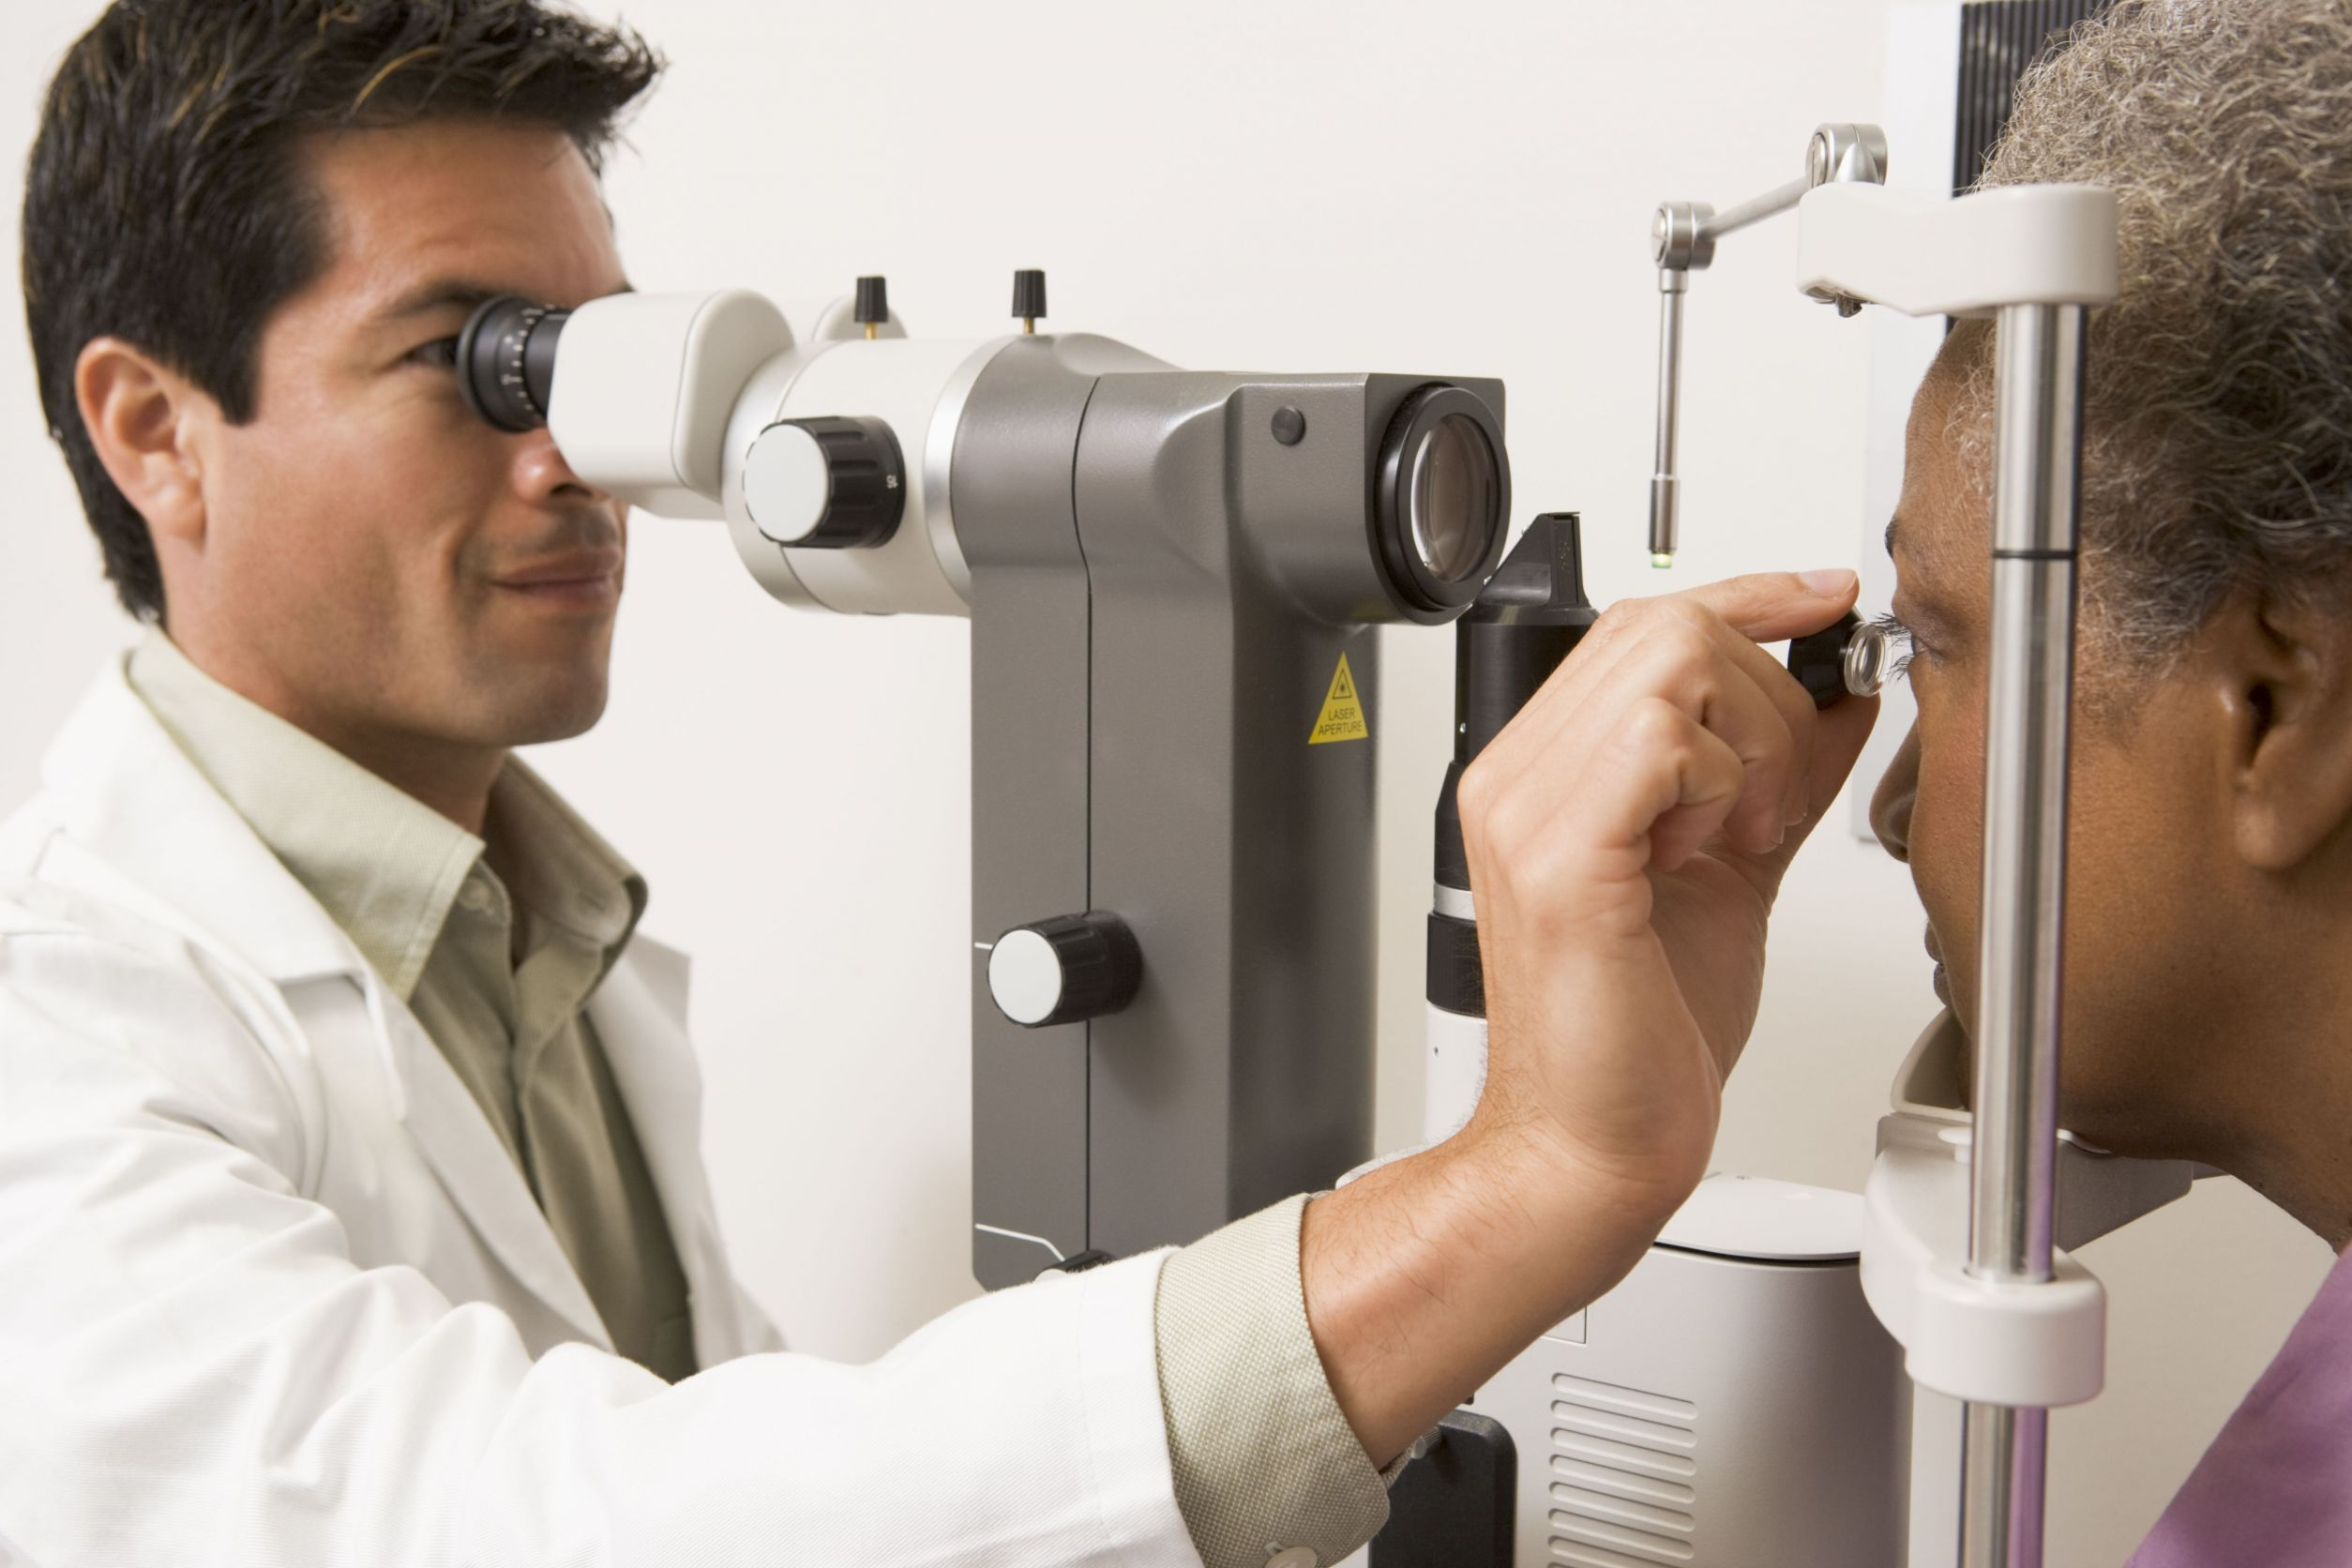 The Career Path Of Becoming An Optician By Rodriguezsha - Job description of an optician